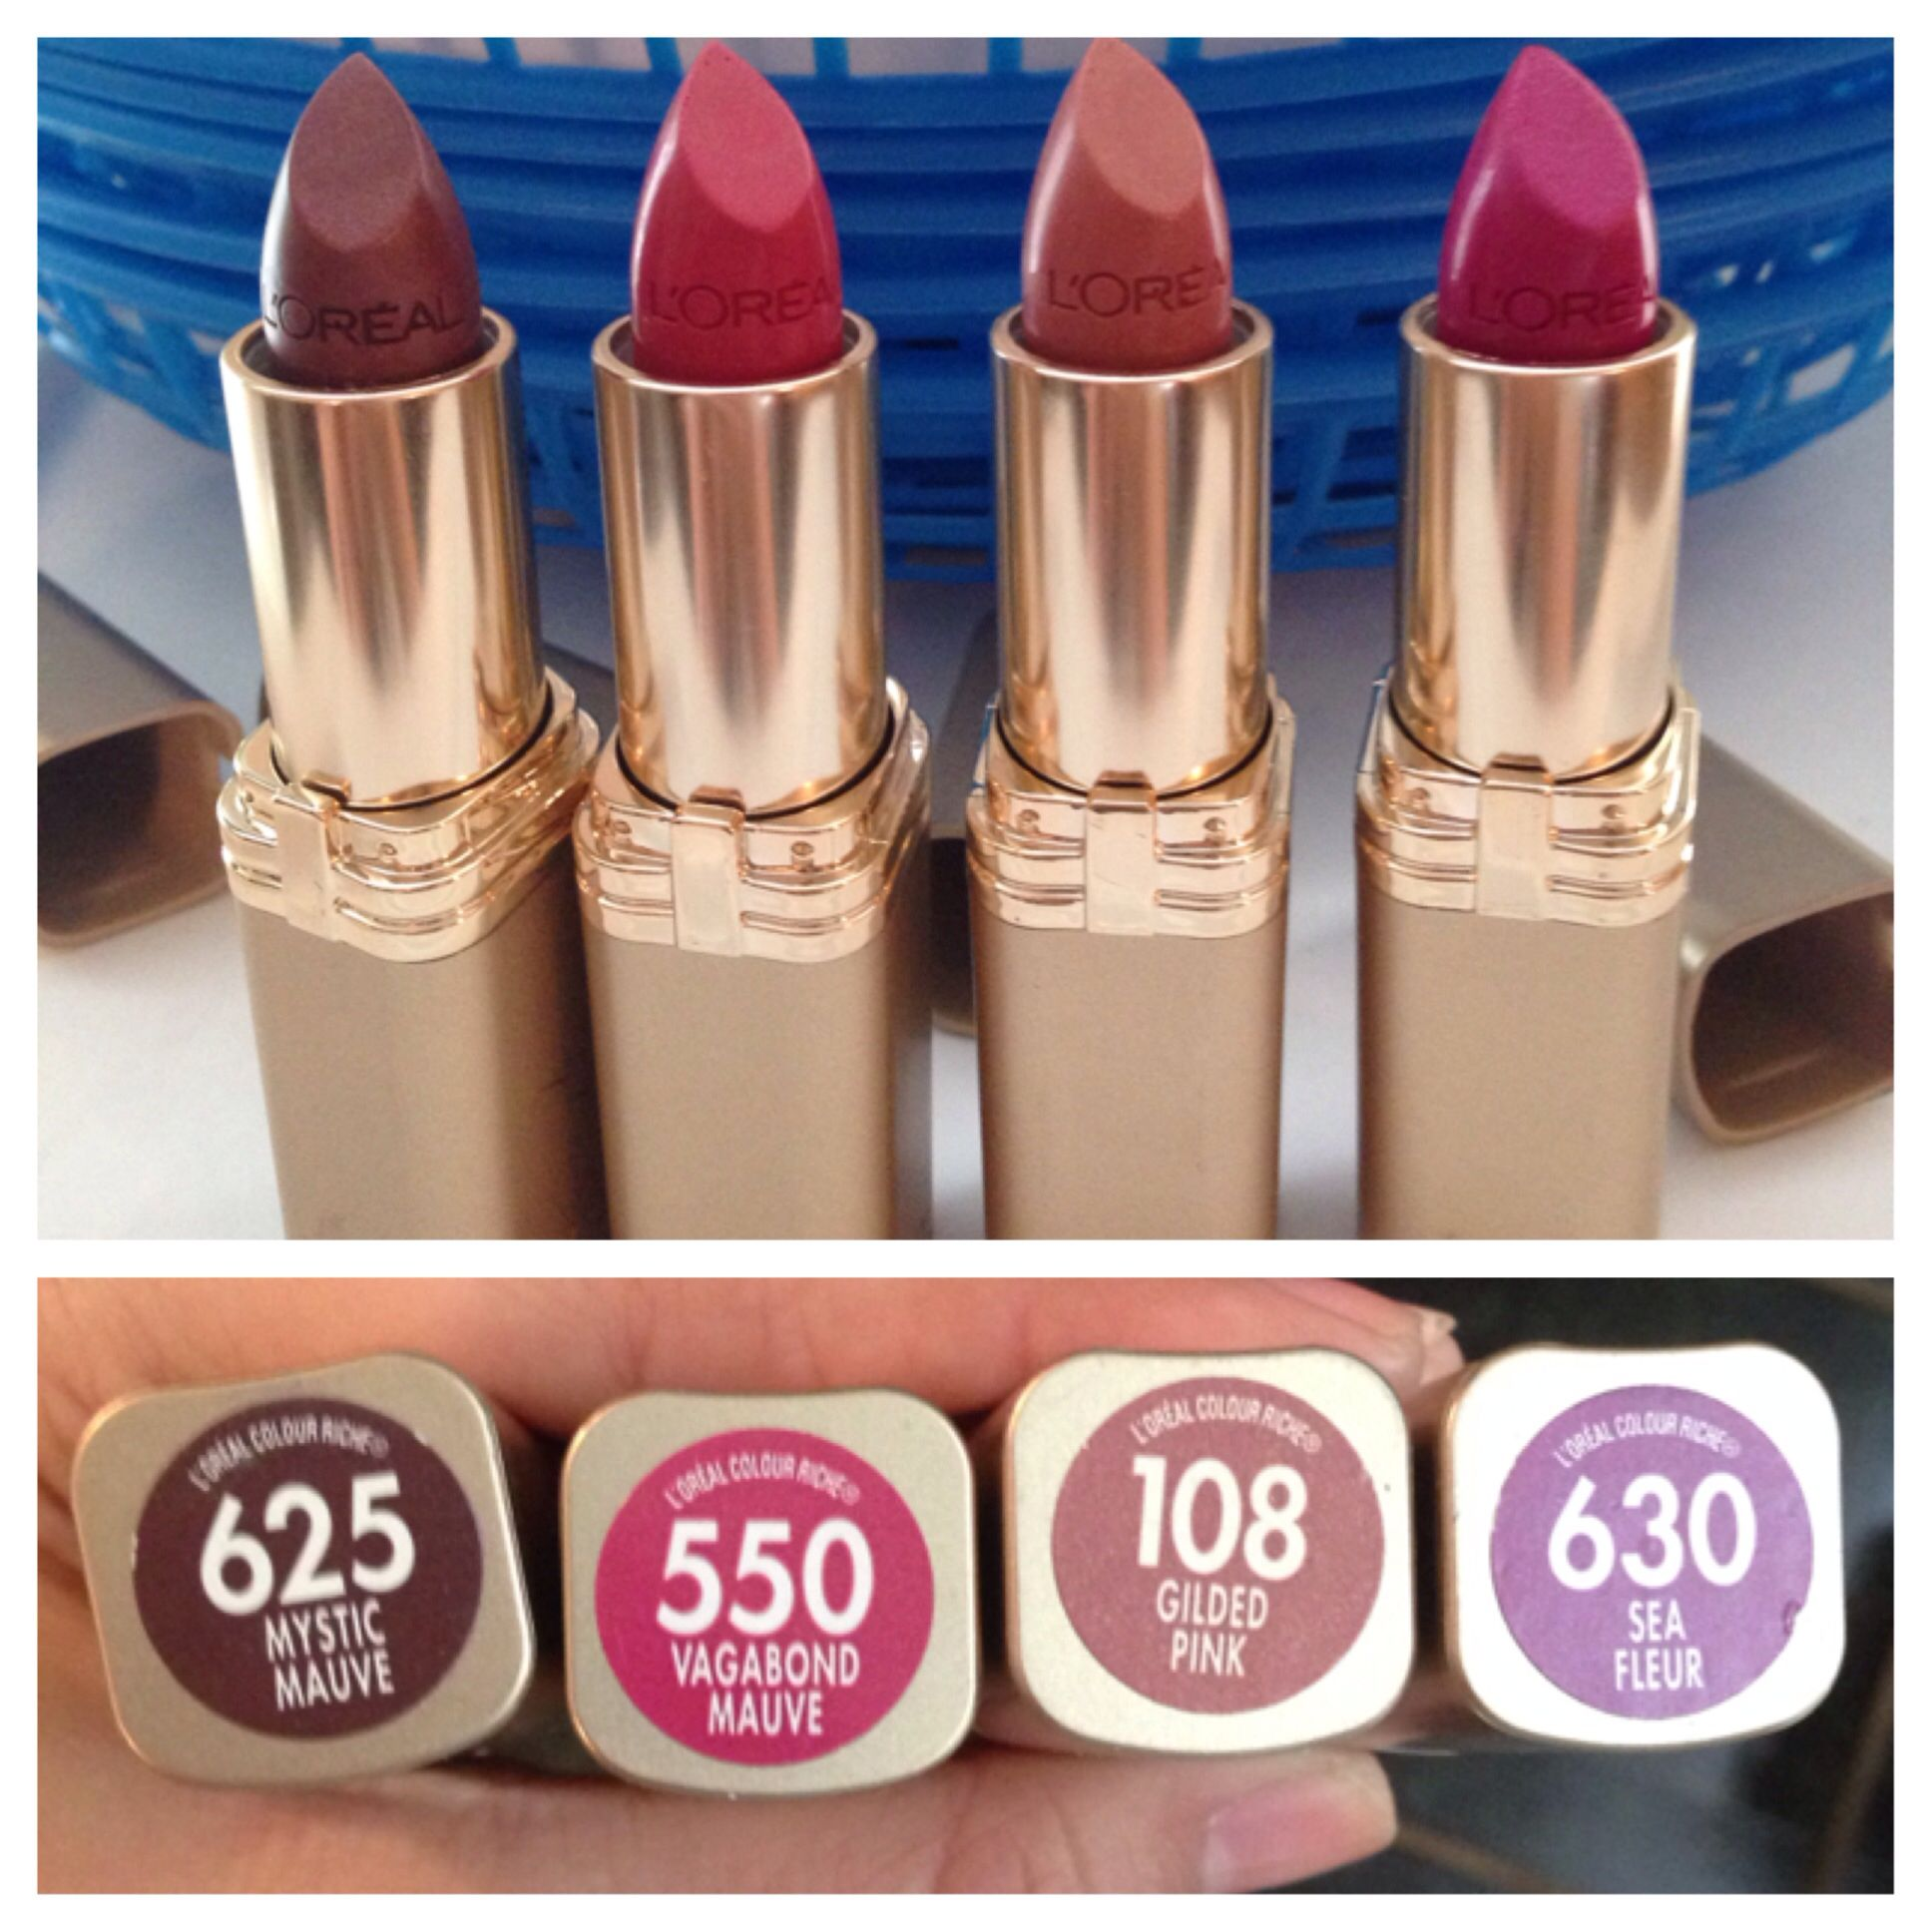 Loreal lipsticks shade names shown in picture NEW | Pretty ...